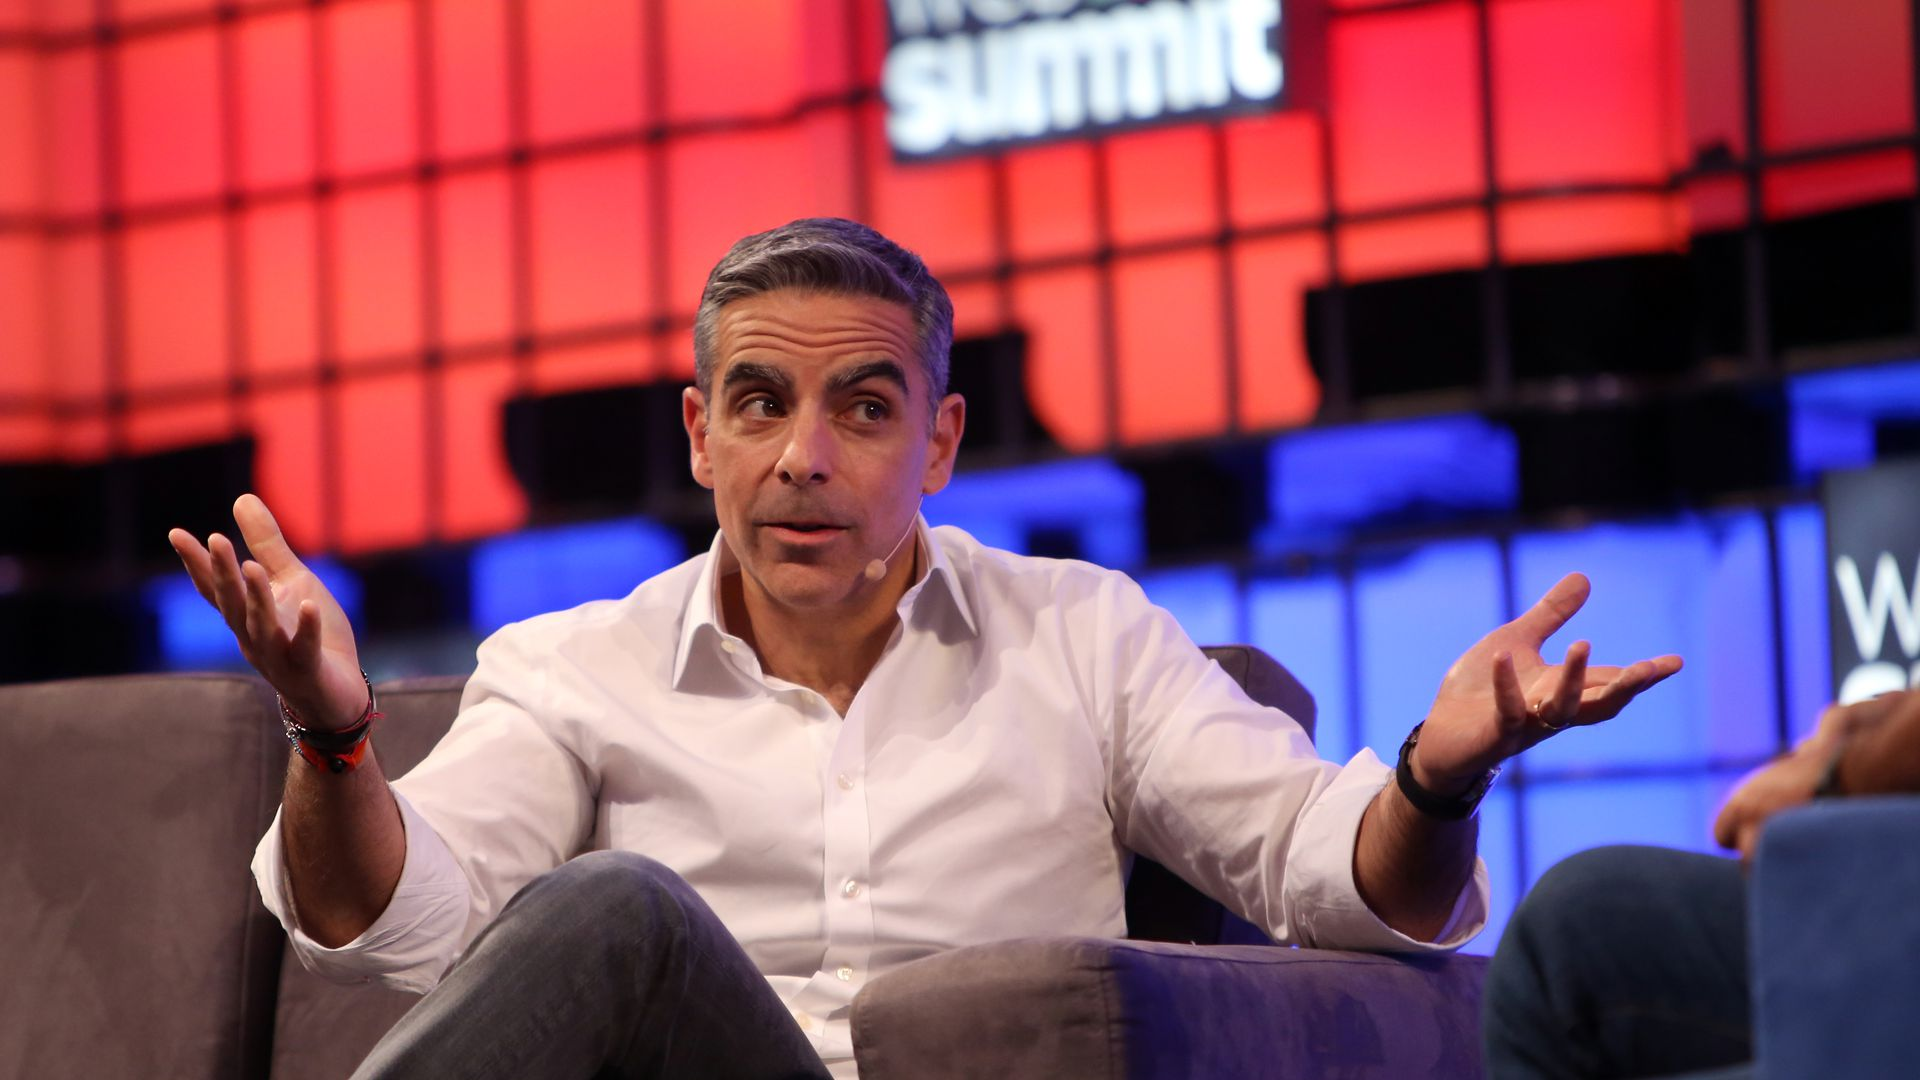 Facebook executive David Marcus speaks at a conference.